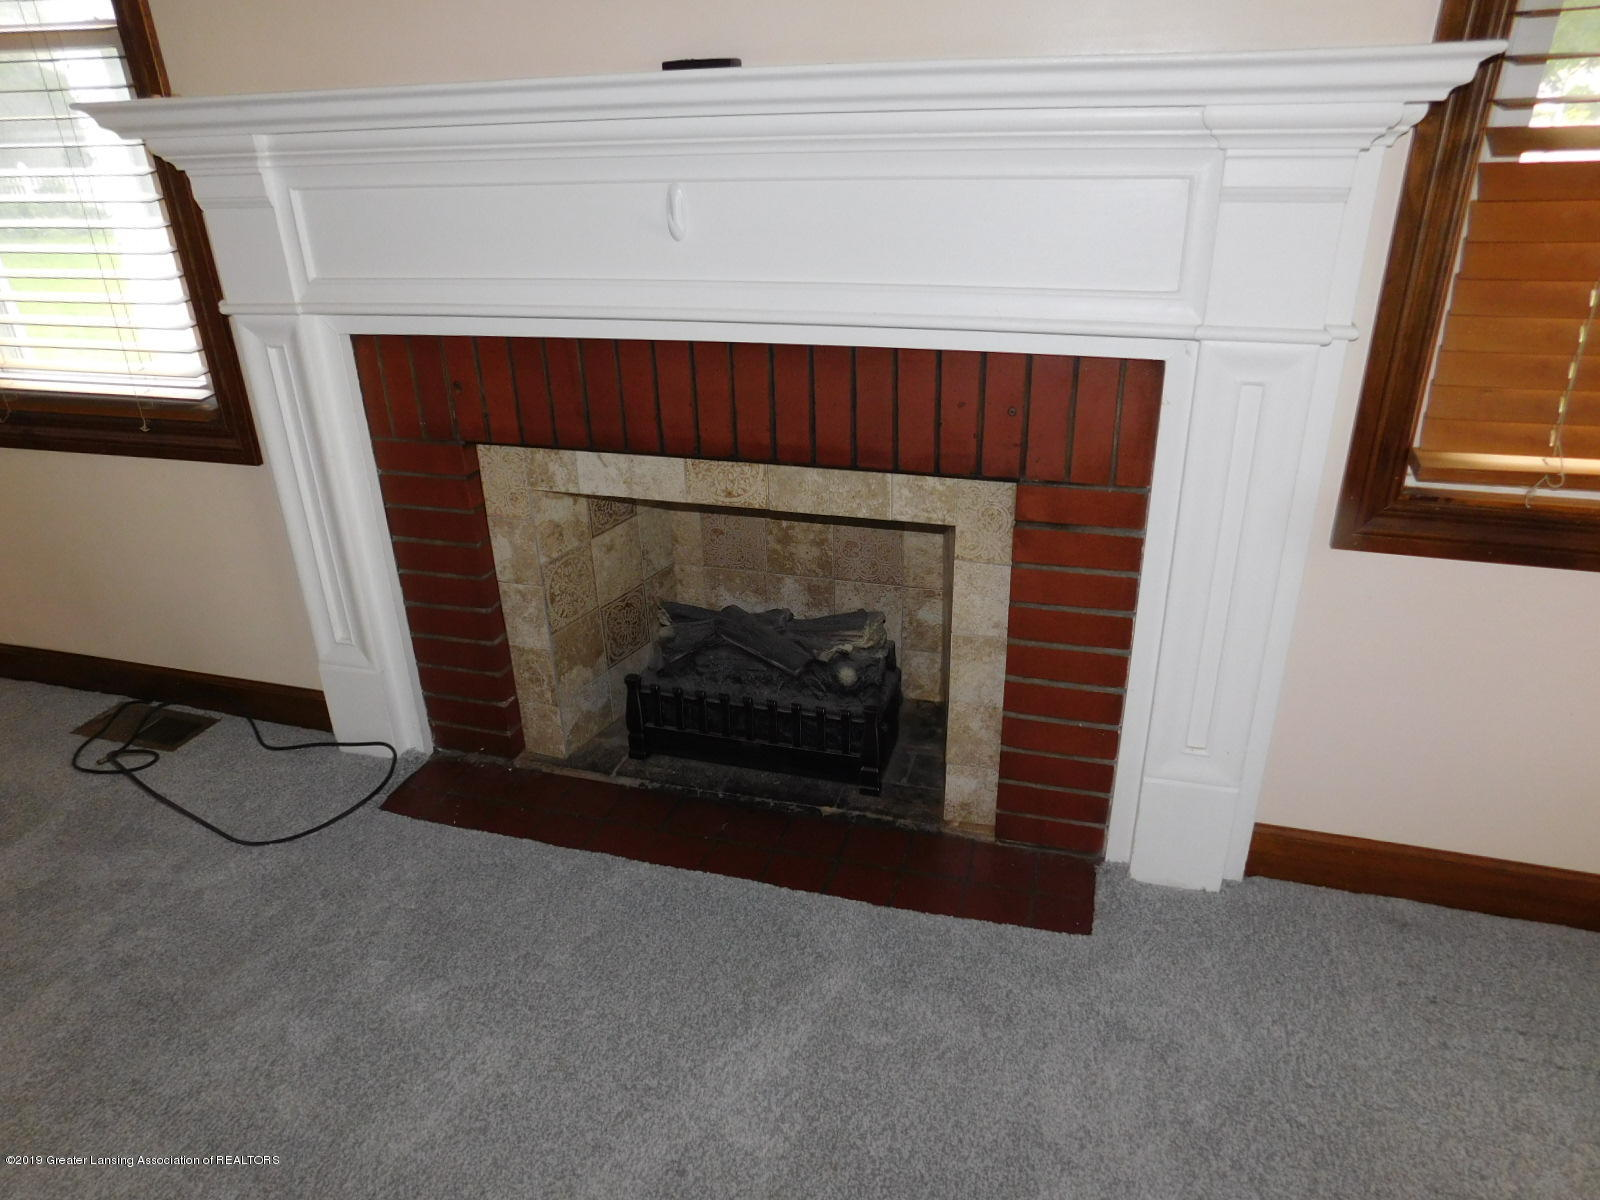 725 Merrill Ave - FIREPLACE - 6